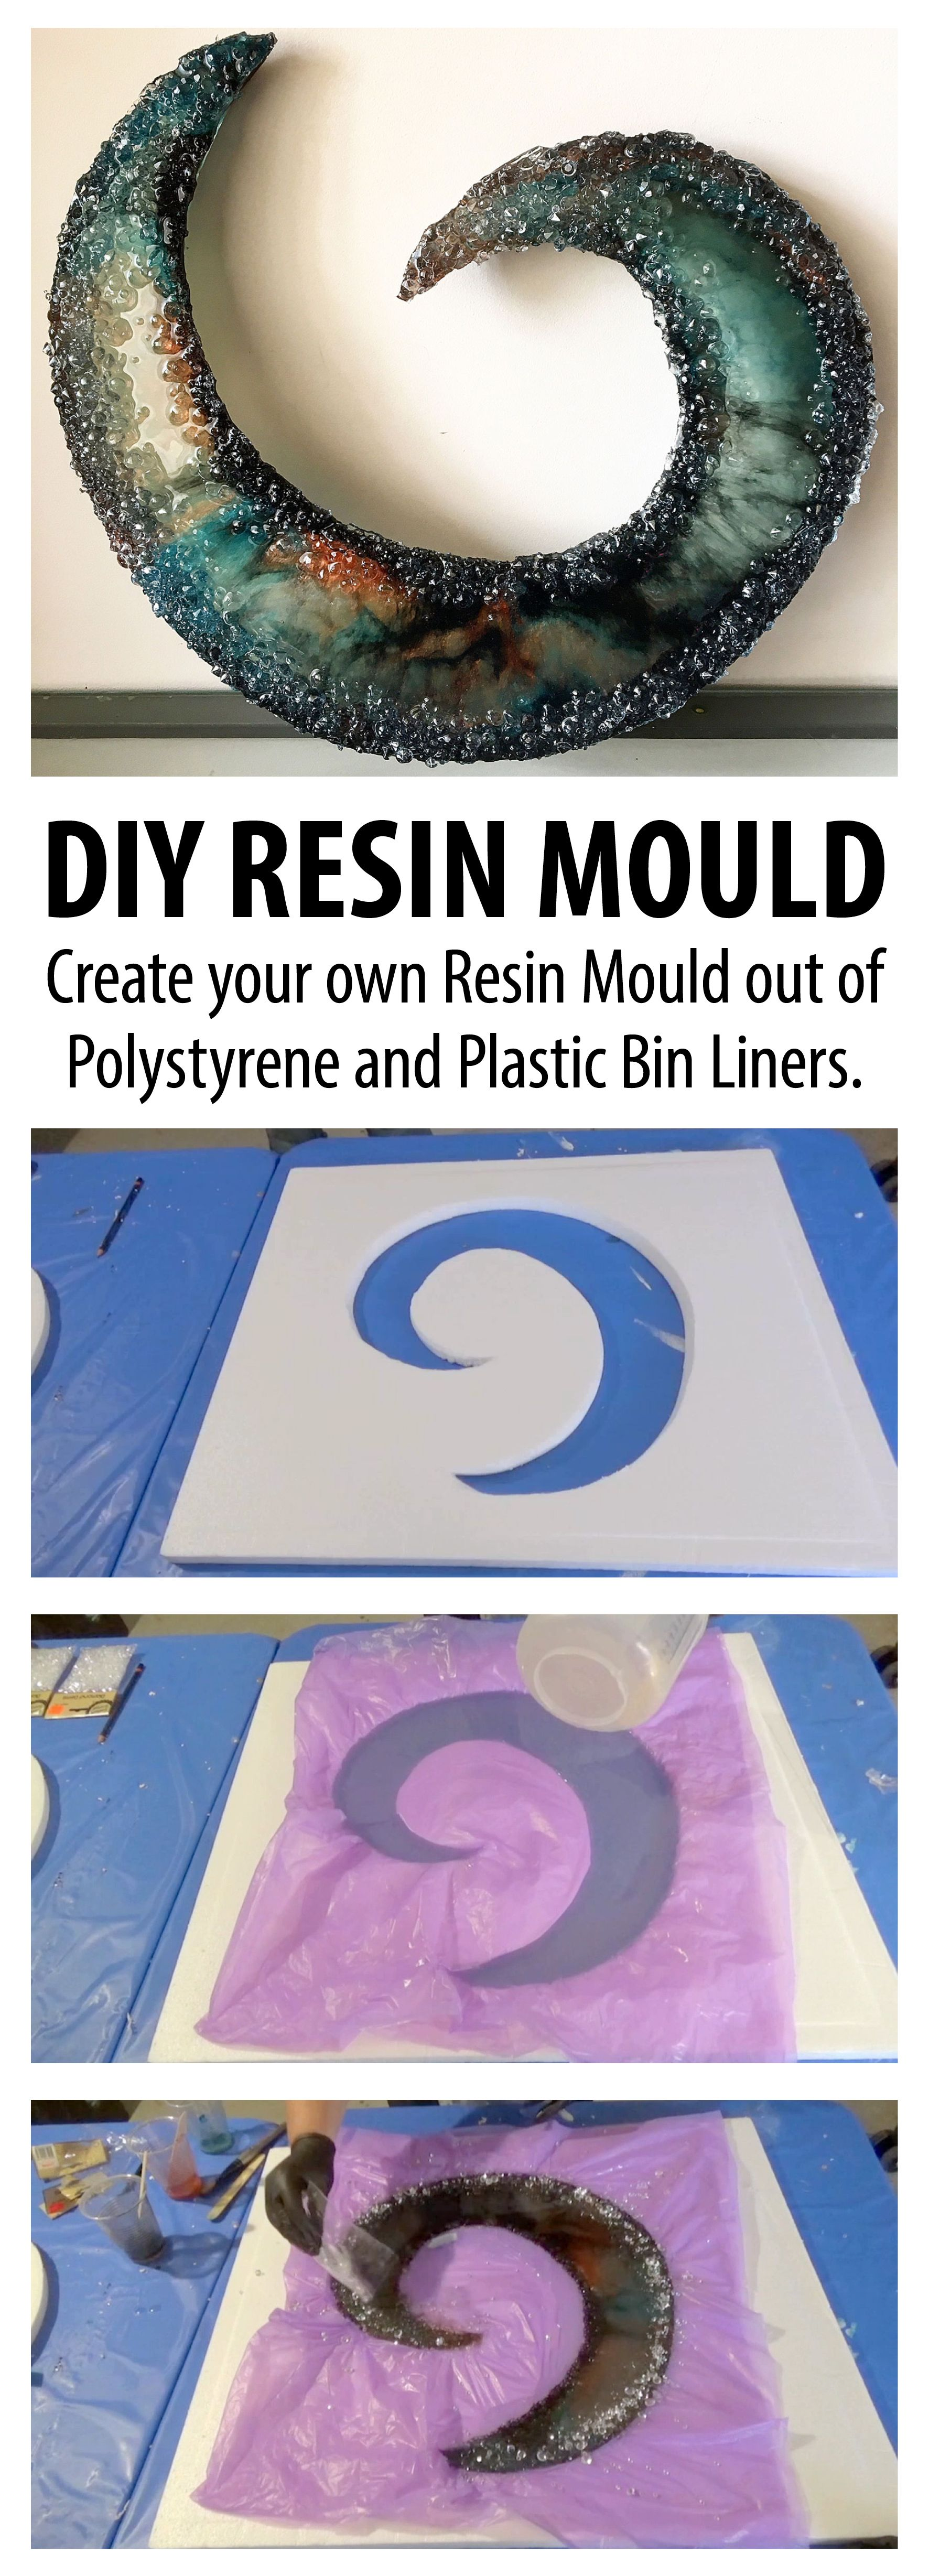 How To Create Your Own Resin Mould Out Of Bin Liners Diy Resin Mold Resin Diy Plastic Bins